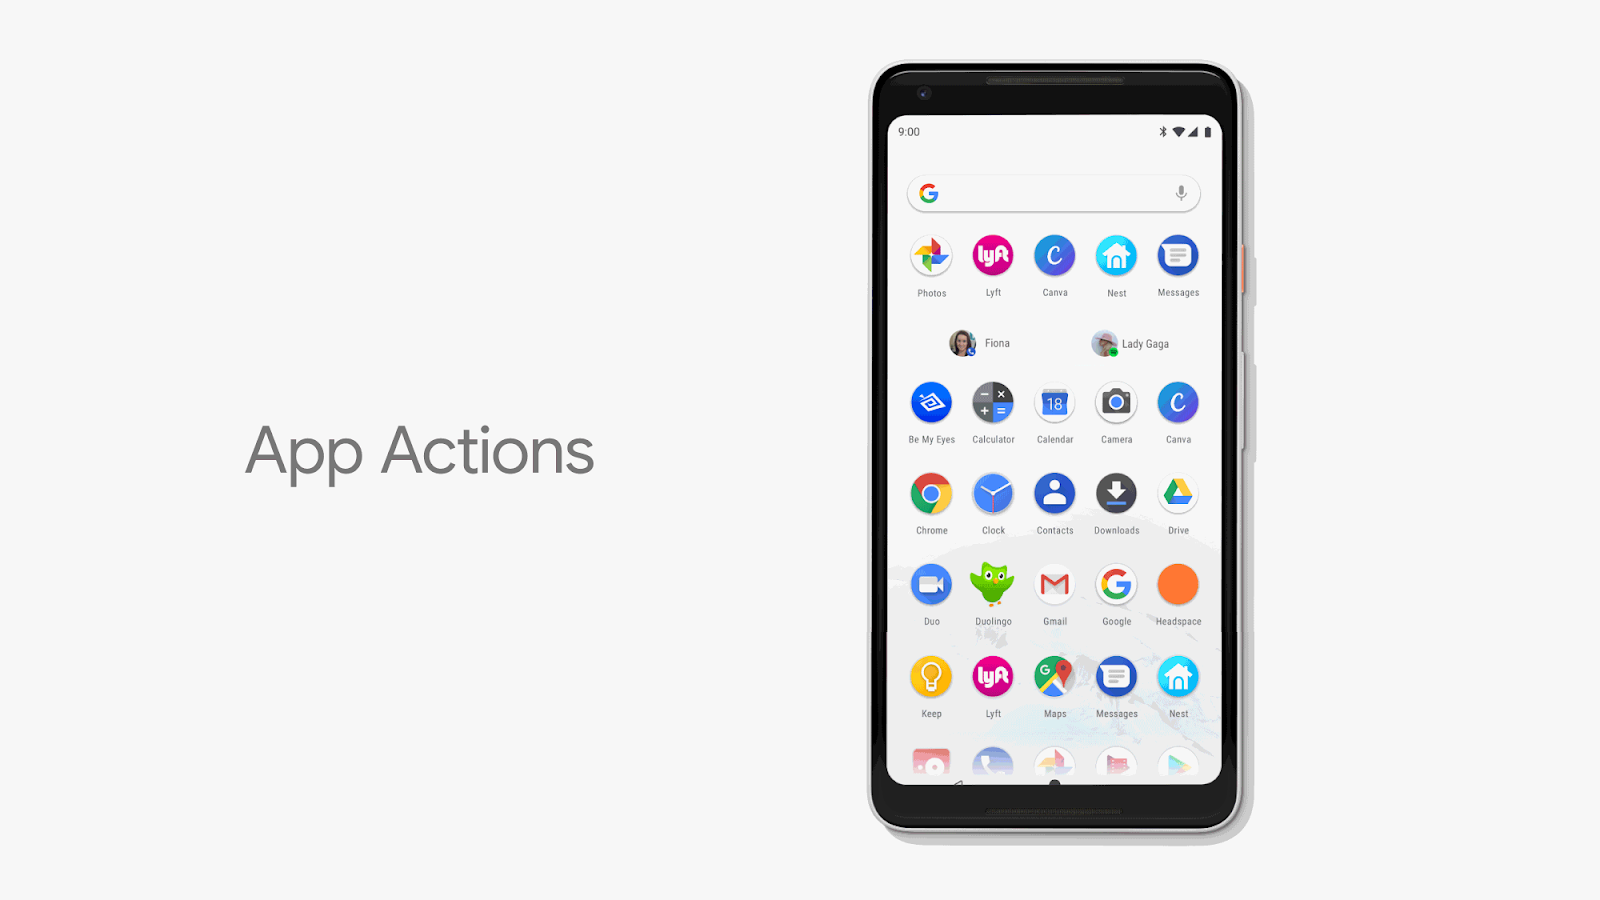 Android P Beta: Everything You Need to Know - DZone Mobile